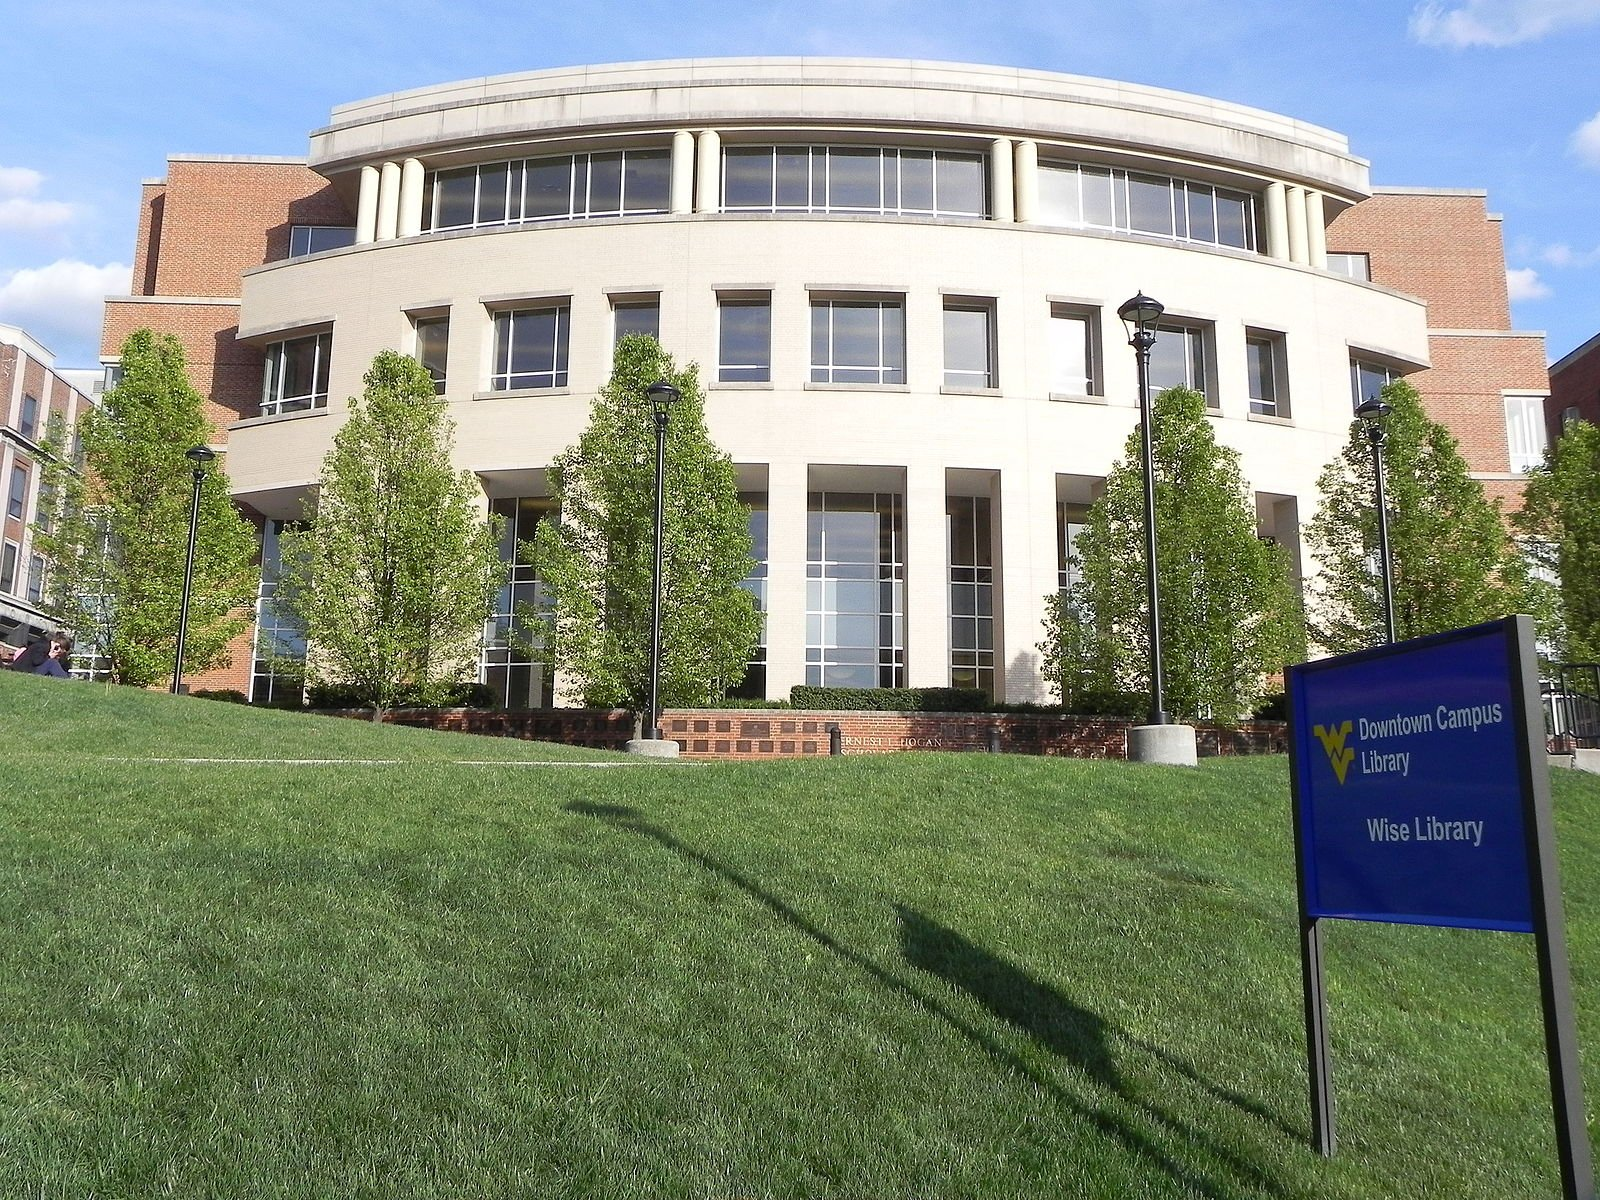 The modern library on the Downtown campus at WVU is built onto the front of the old Wise Library. Wikimedia Commons.